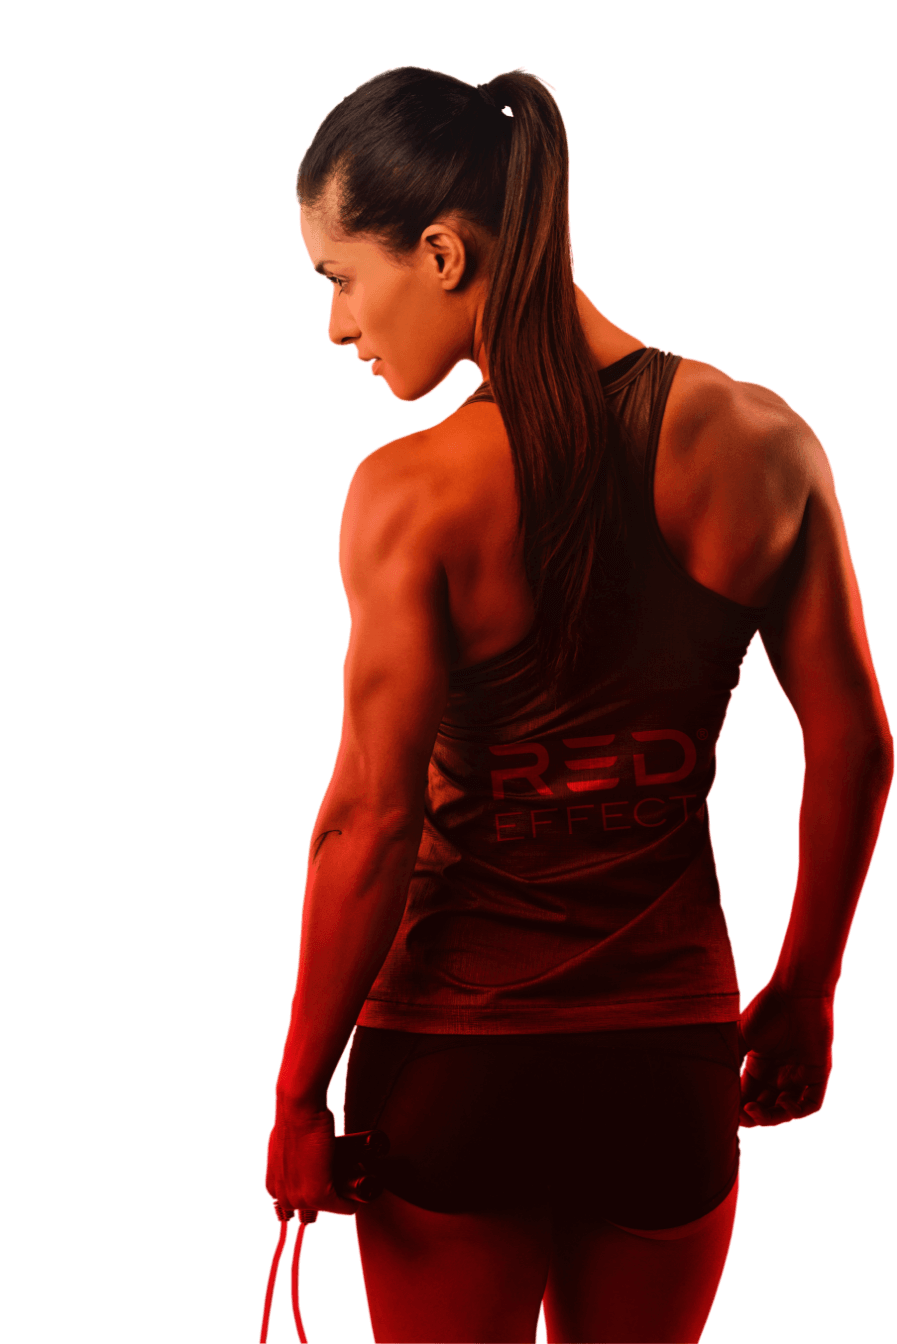 An athletic woman posing to show her muscle definition